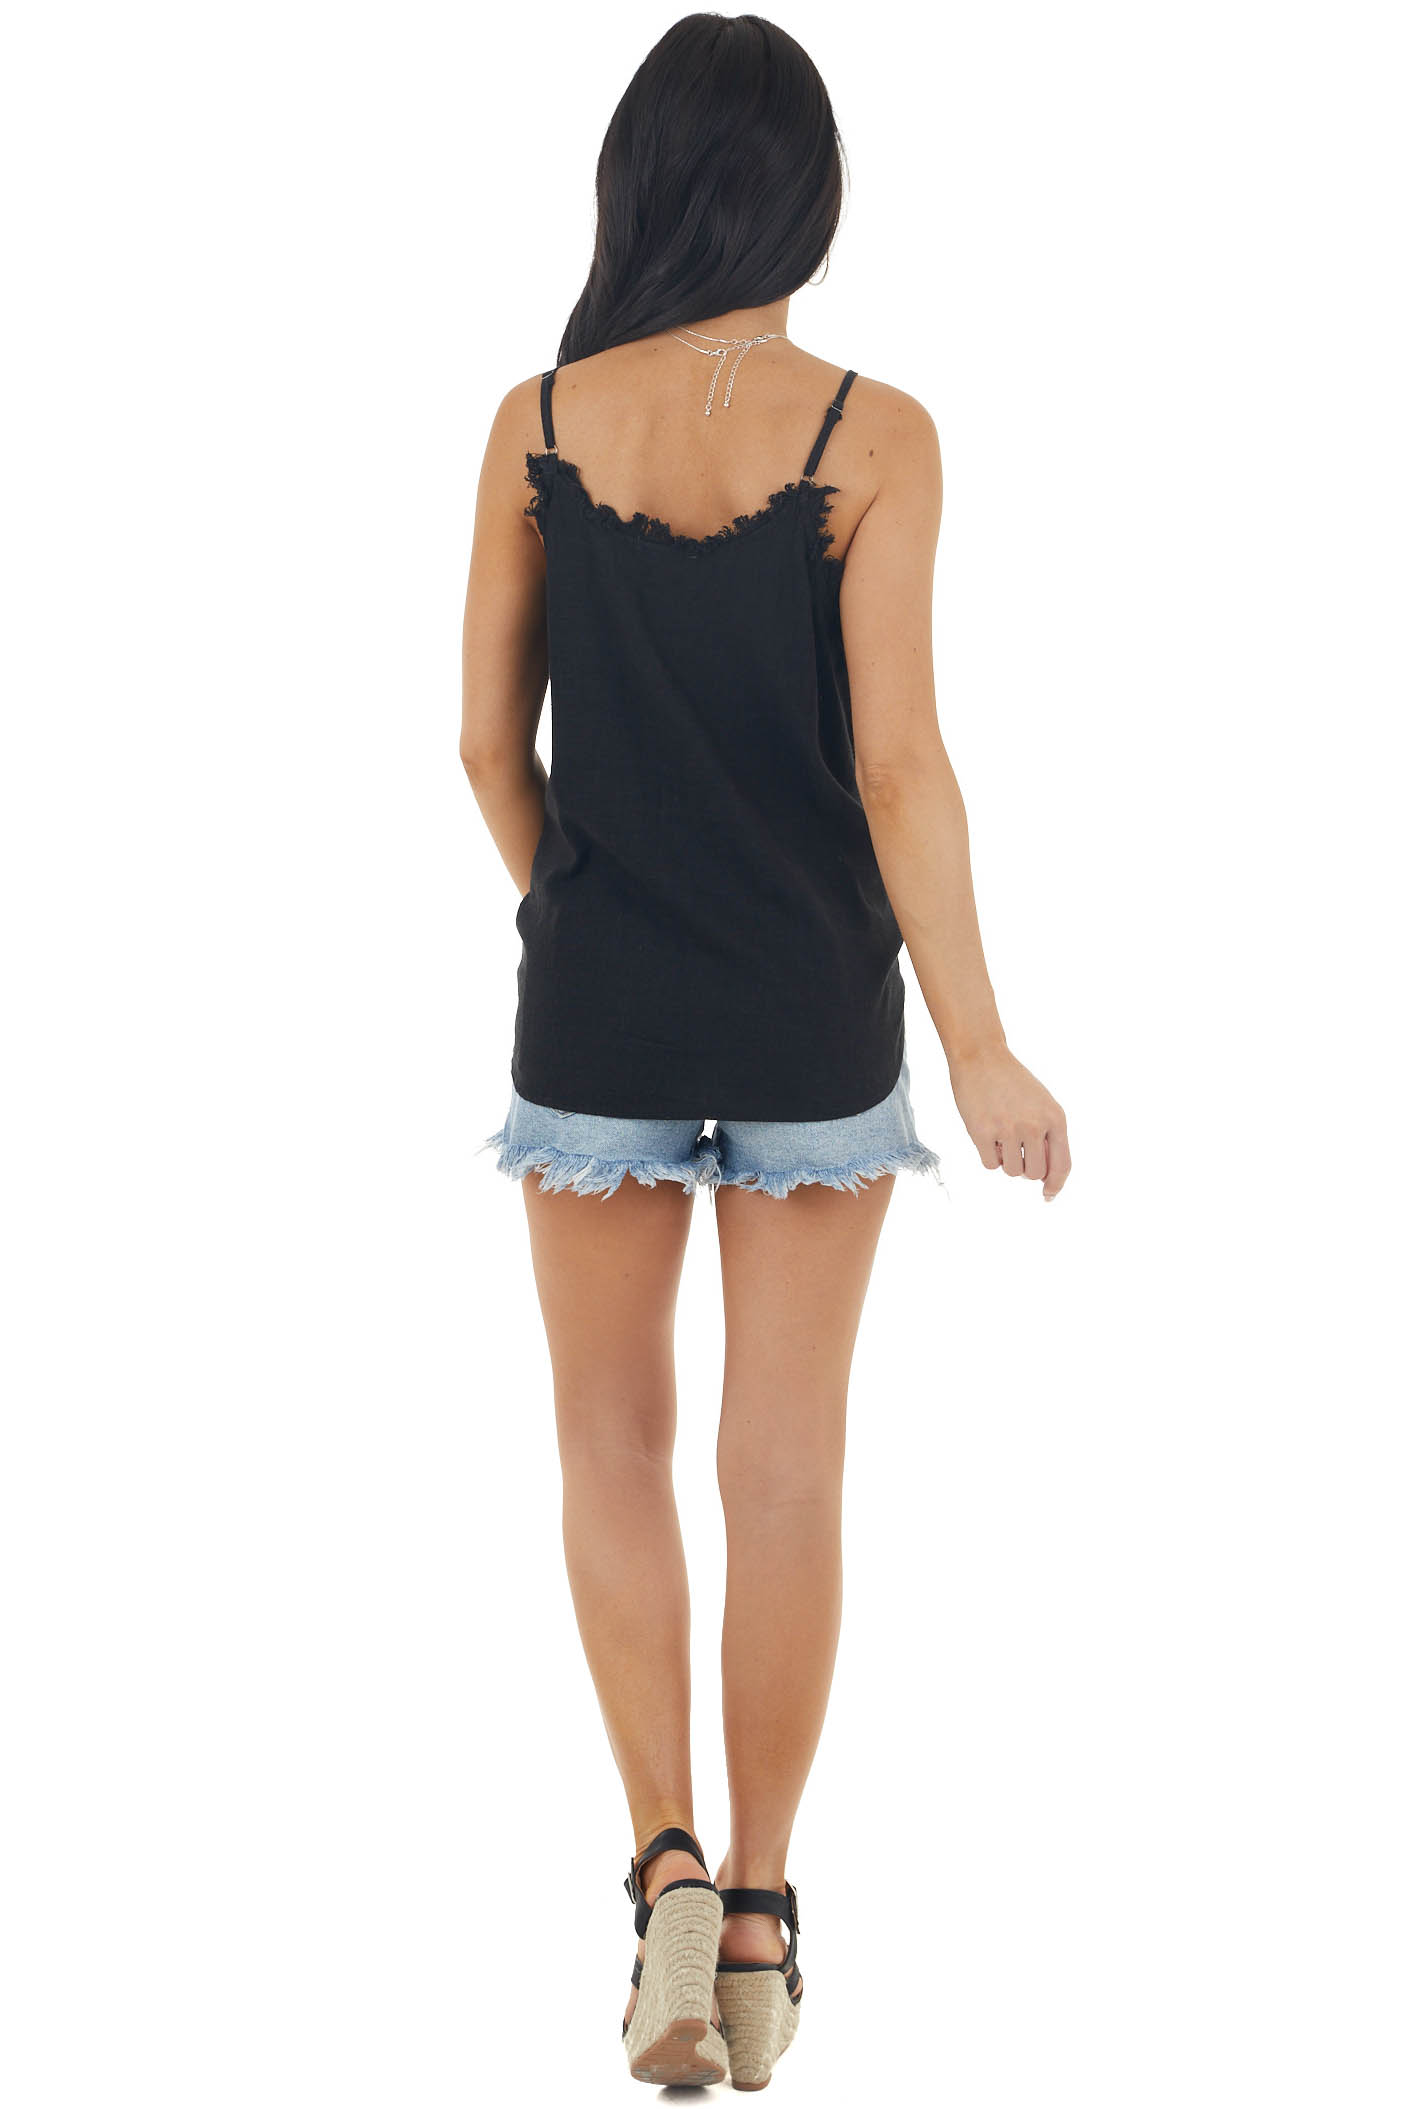 Black Textured Woven Tank with Raw Neckline and Front Tie